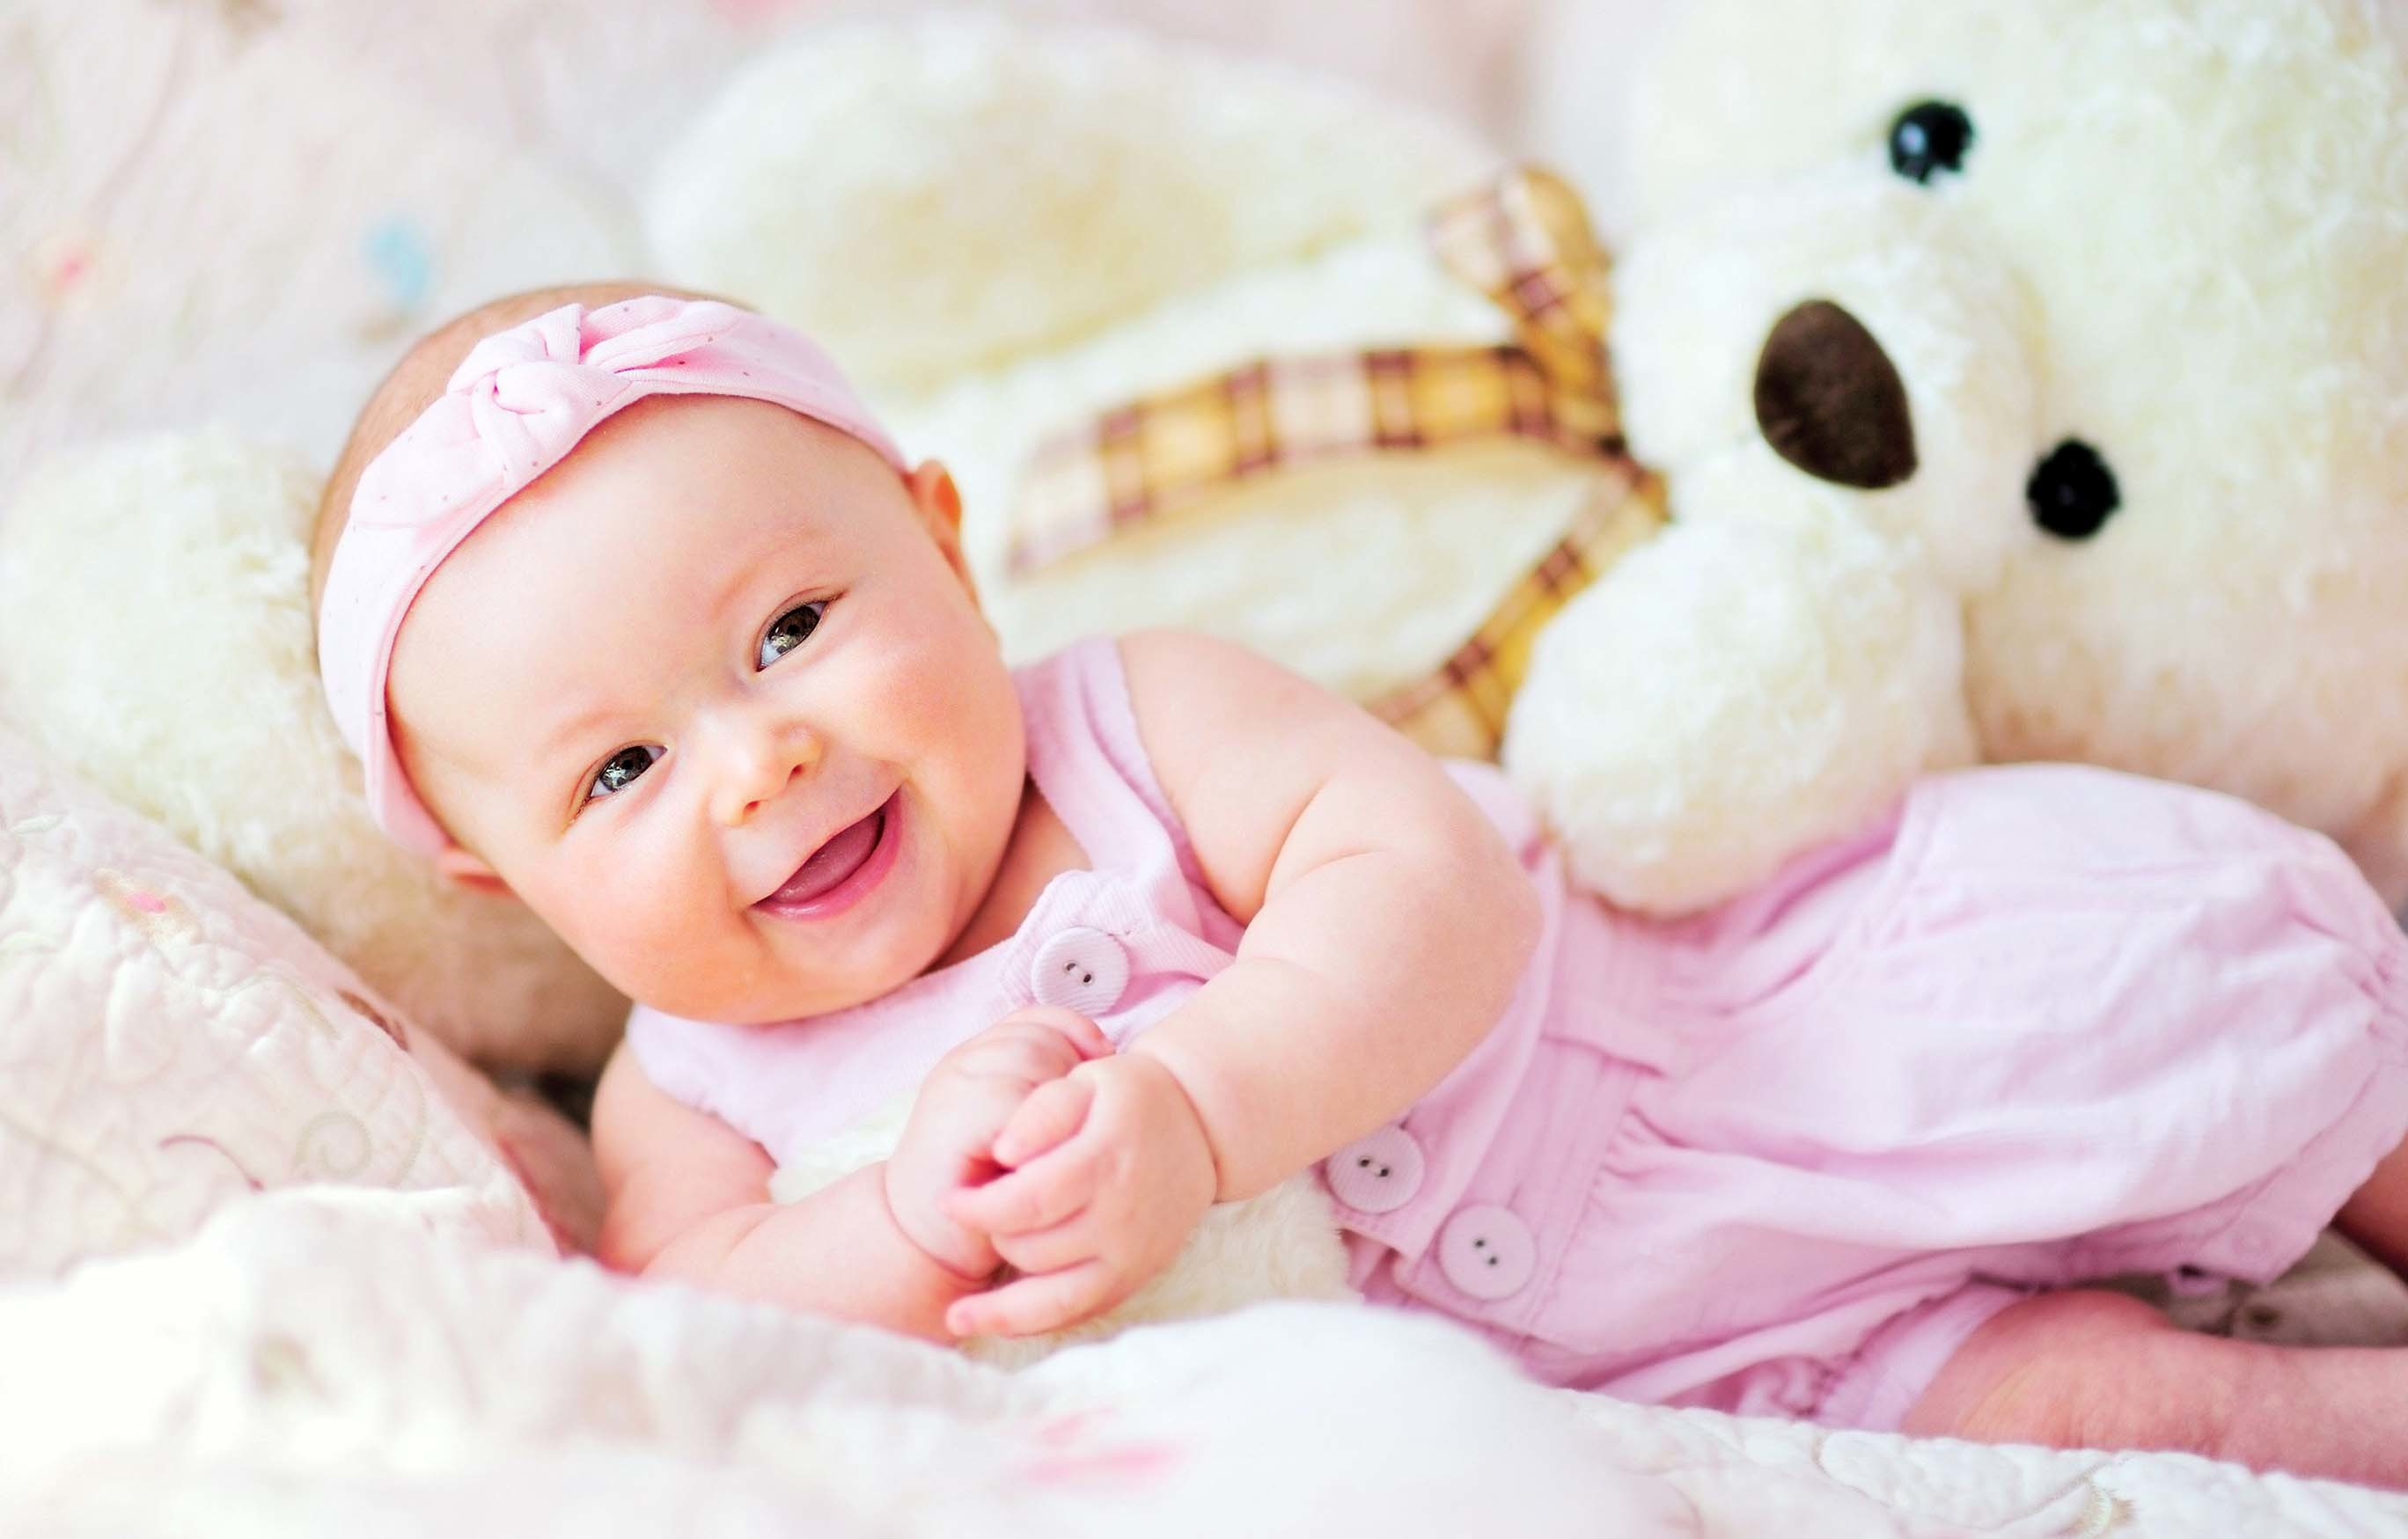 2736x1749 wallpapers of cute baby Innocent Babies Super Cute Wallpapers HD 1080p